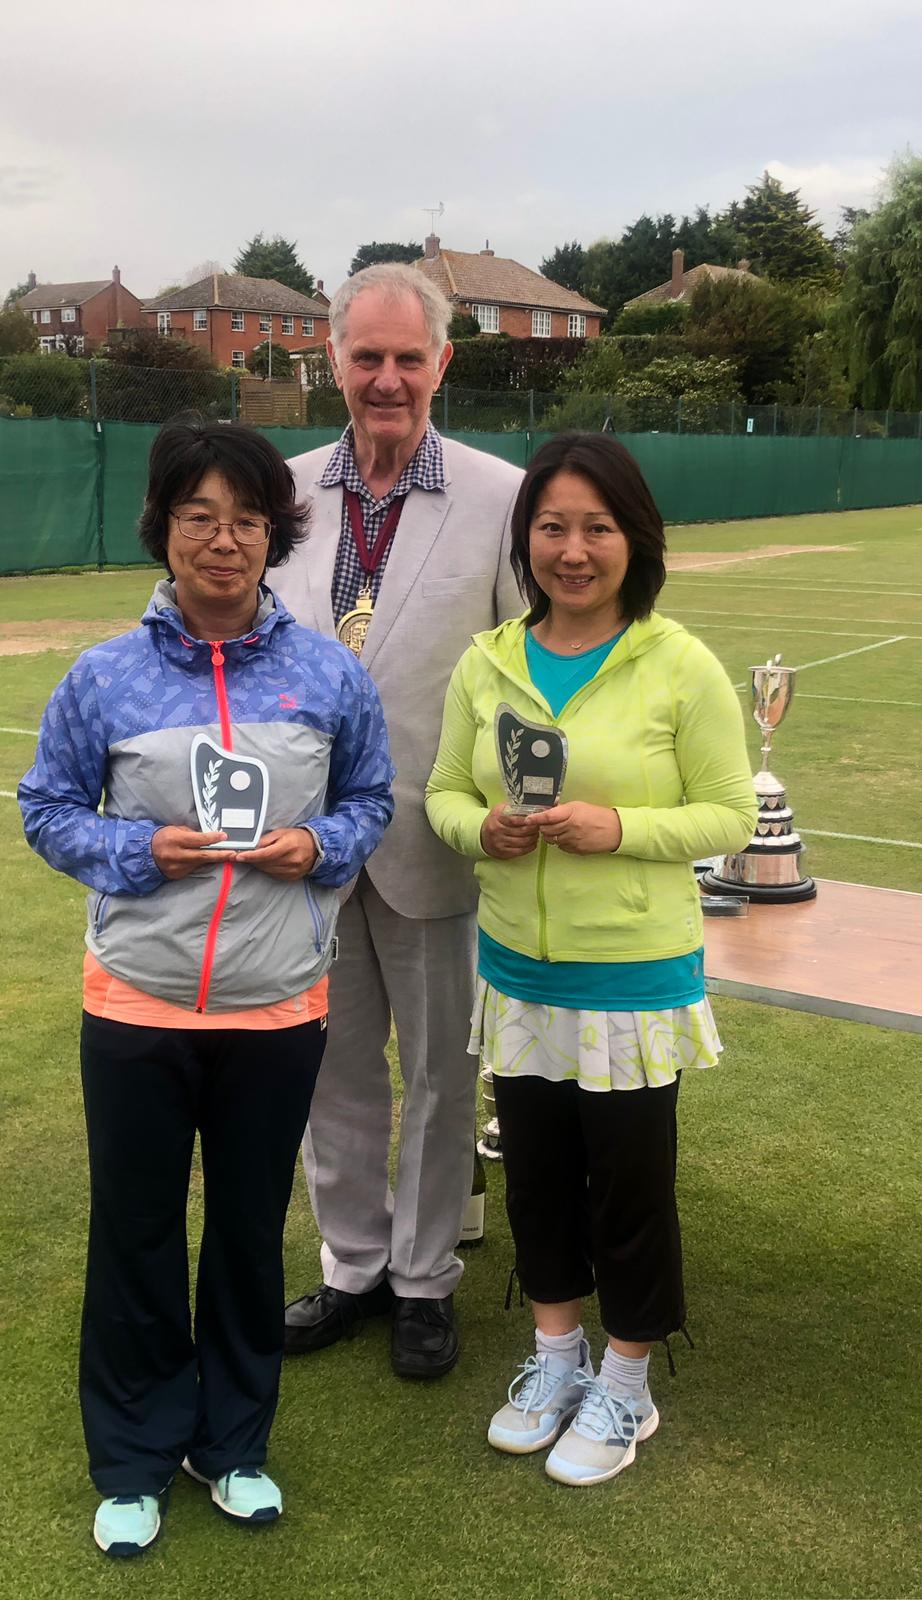 Noriko Kelly and Takako Woods – Runners up in the Restricted Ladies Doubles